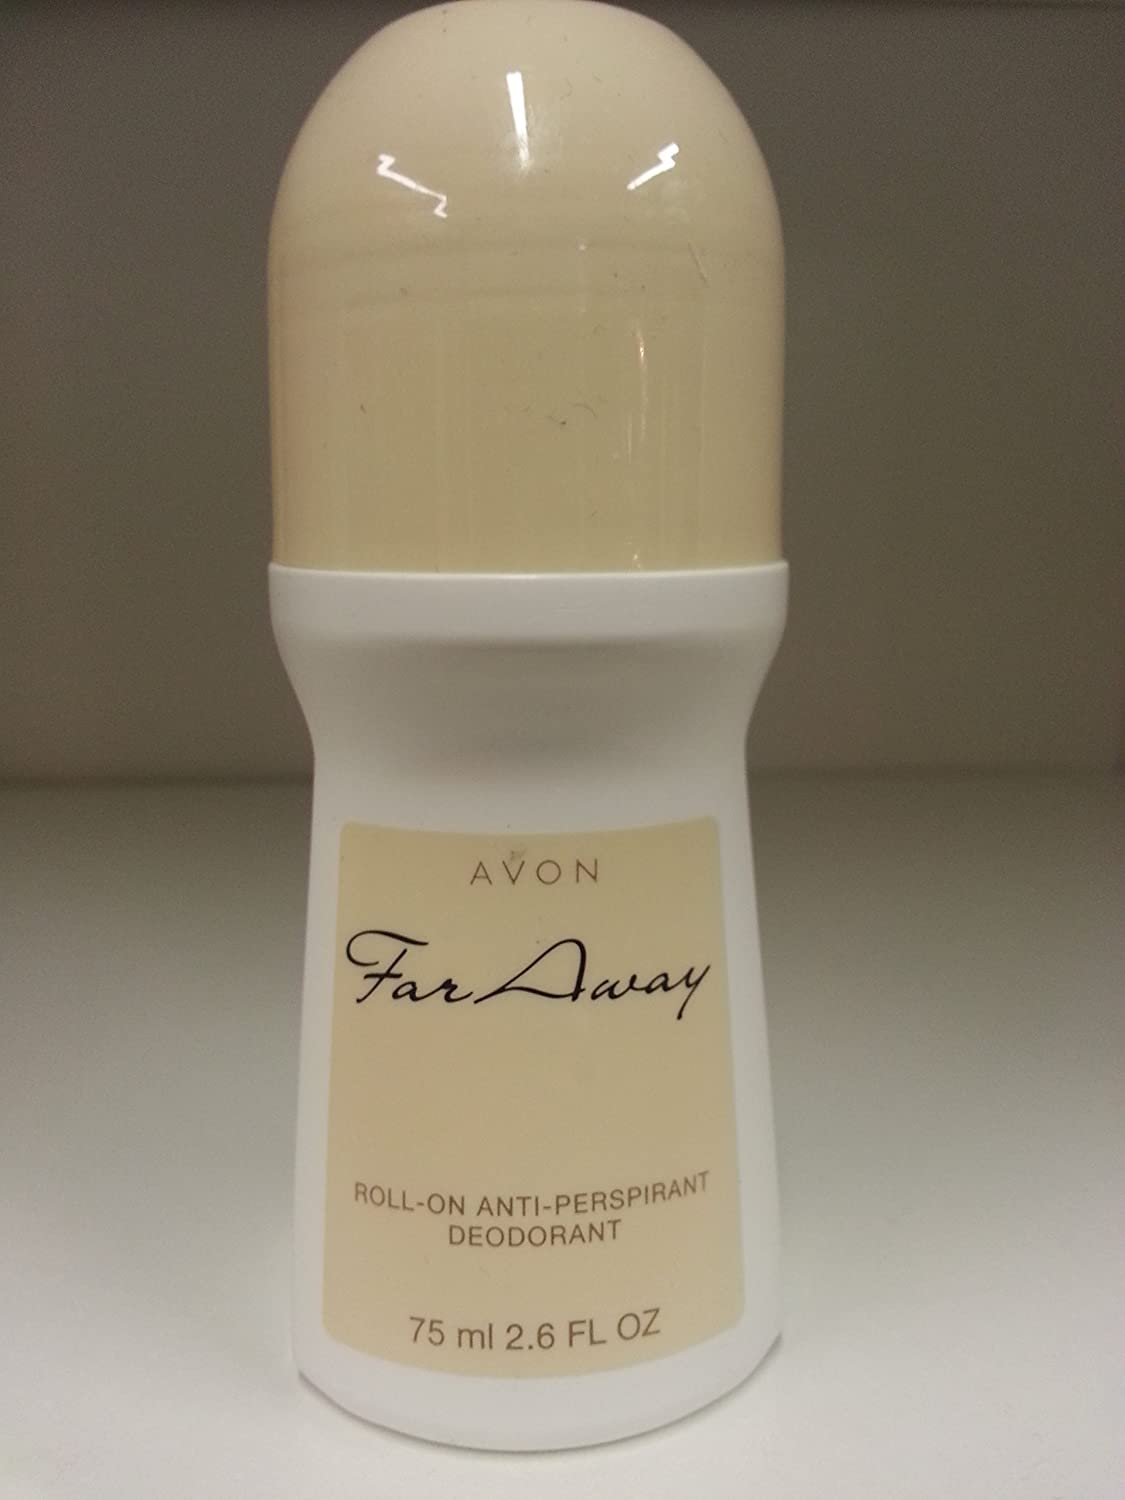 Avon FAR Away Roll-on Anti-perspirant Deodorant Bonus Size 2.6 Fl. Oz.